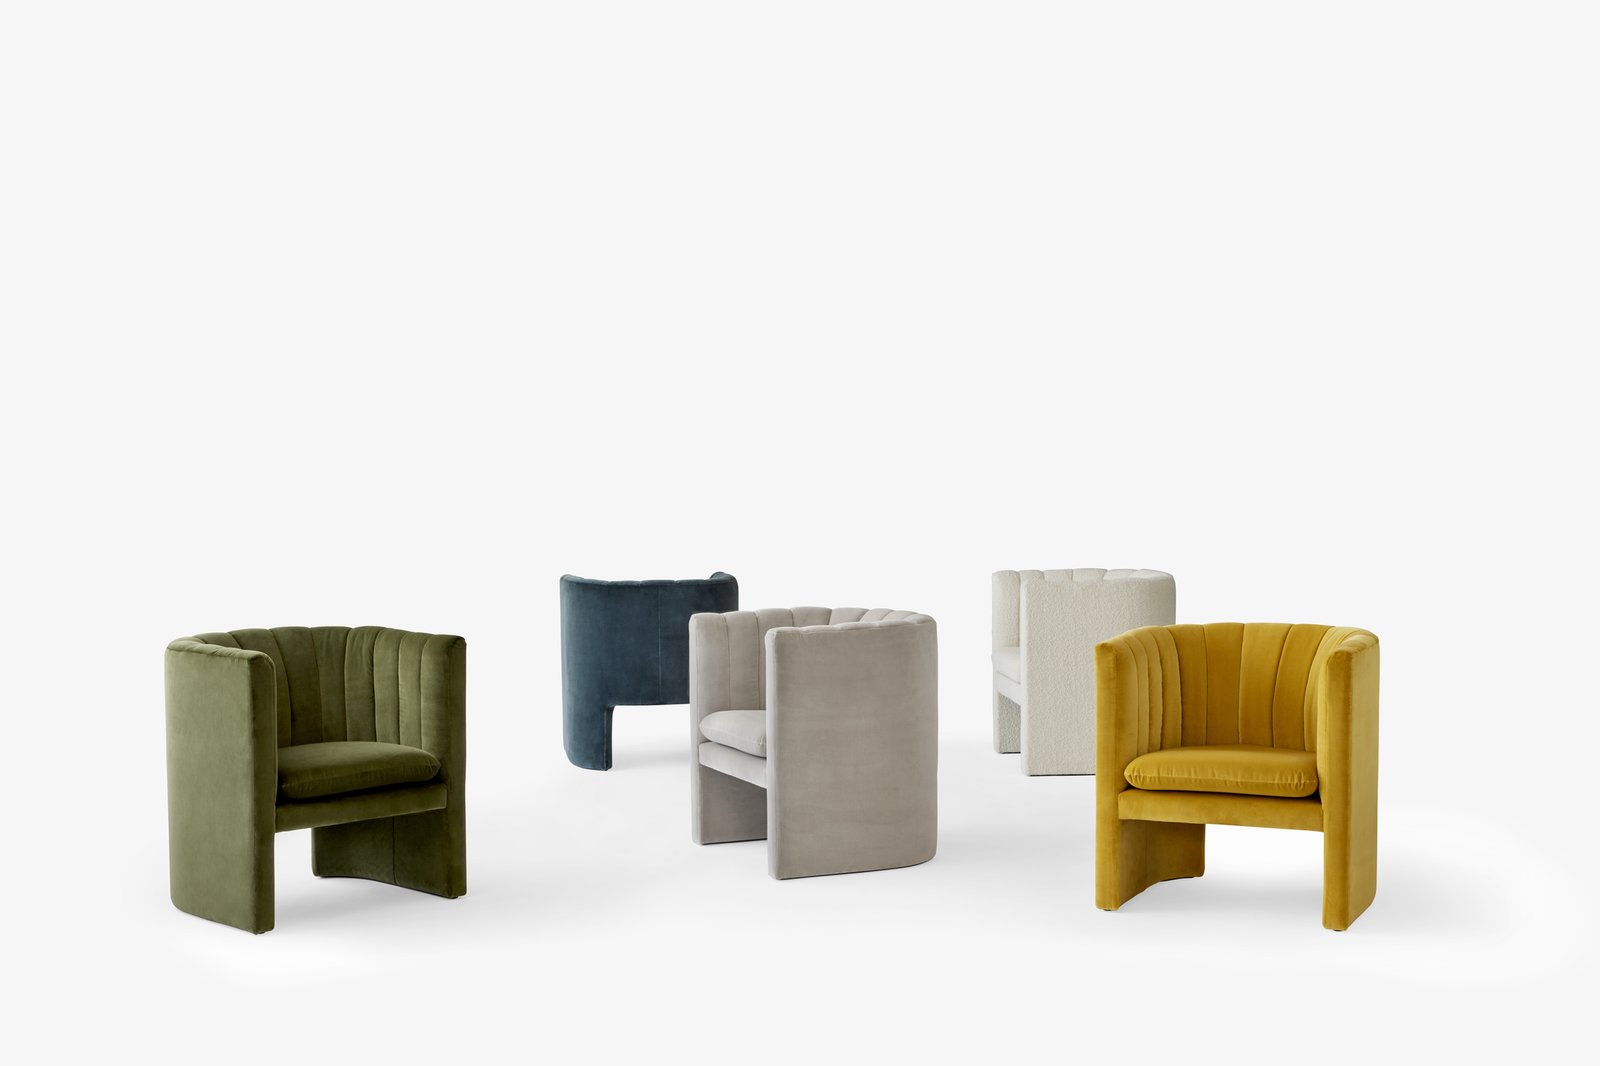 Photo 12 of 16 in Trend Watch: Study Up on the Best Design from imm Cologne 2018